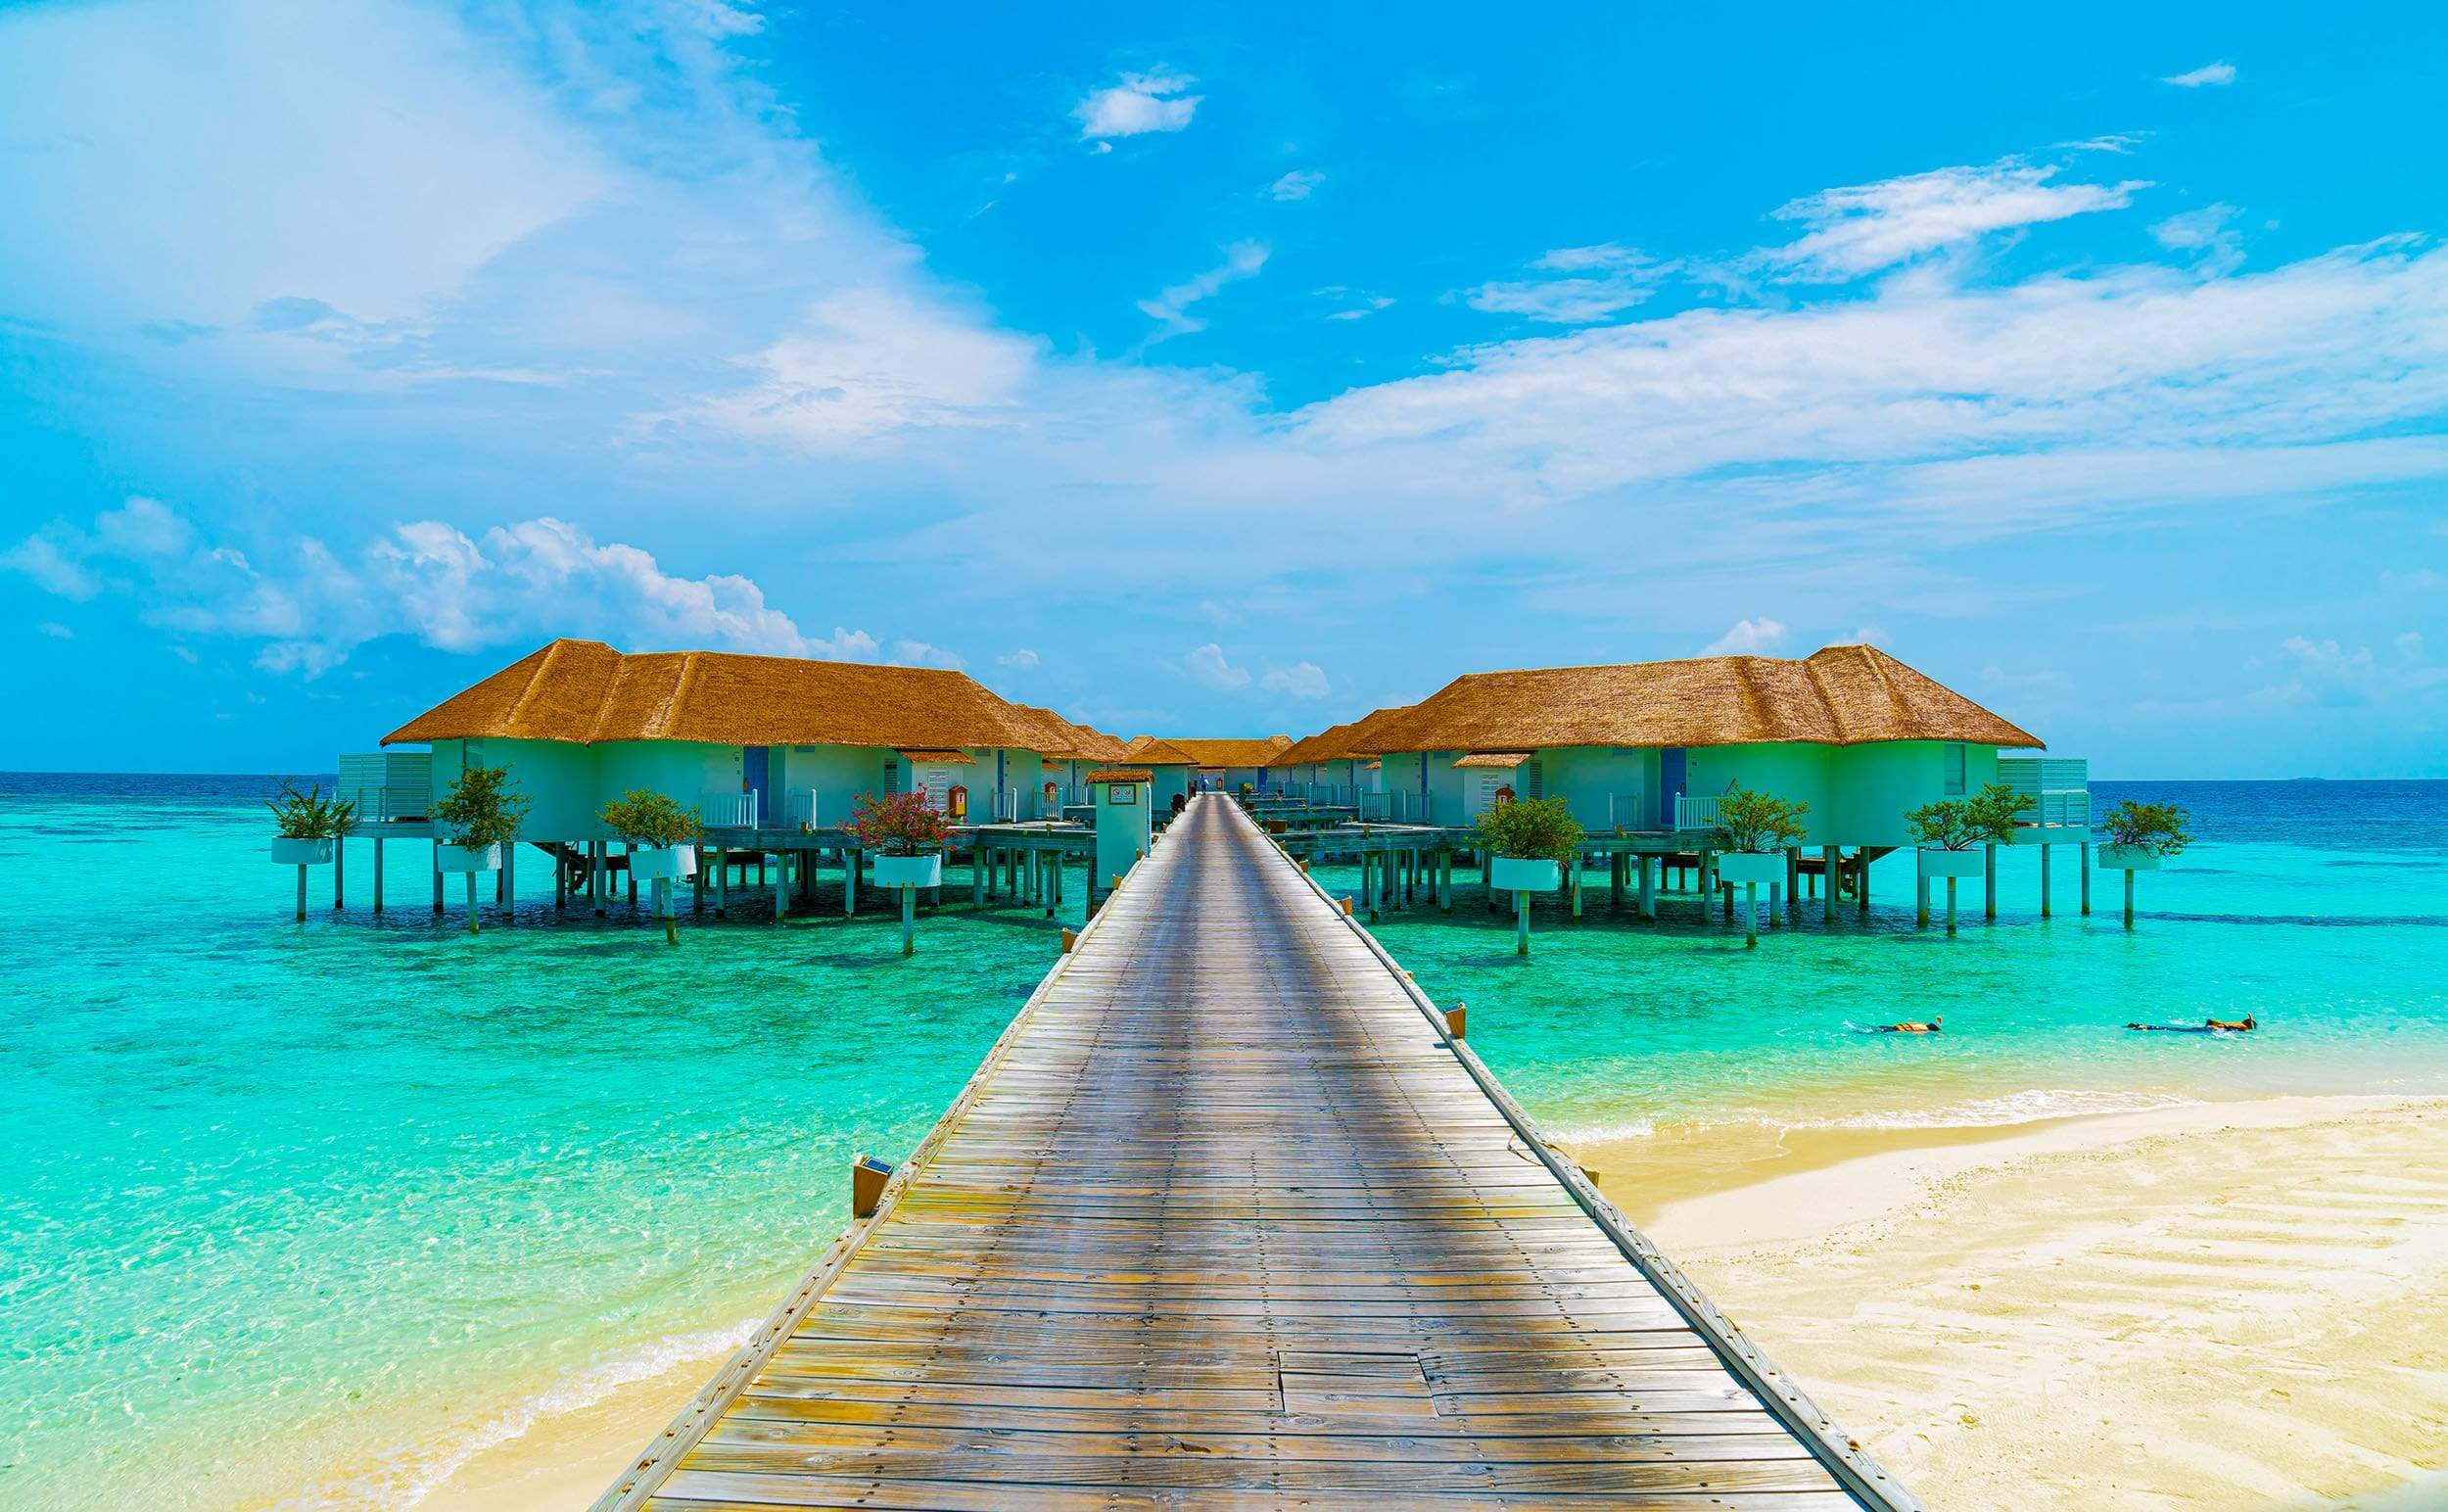 Huts over water with walkway and emerald water